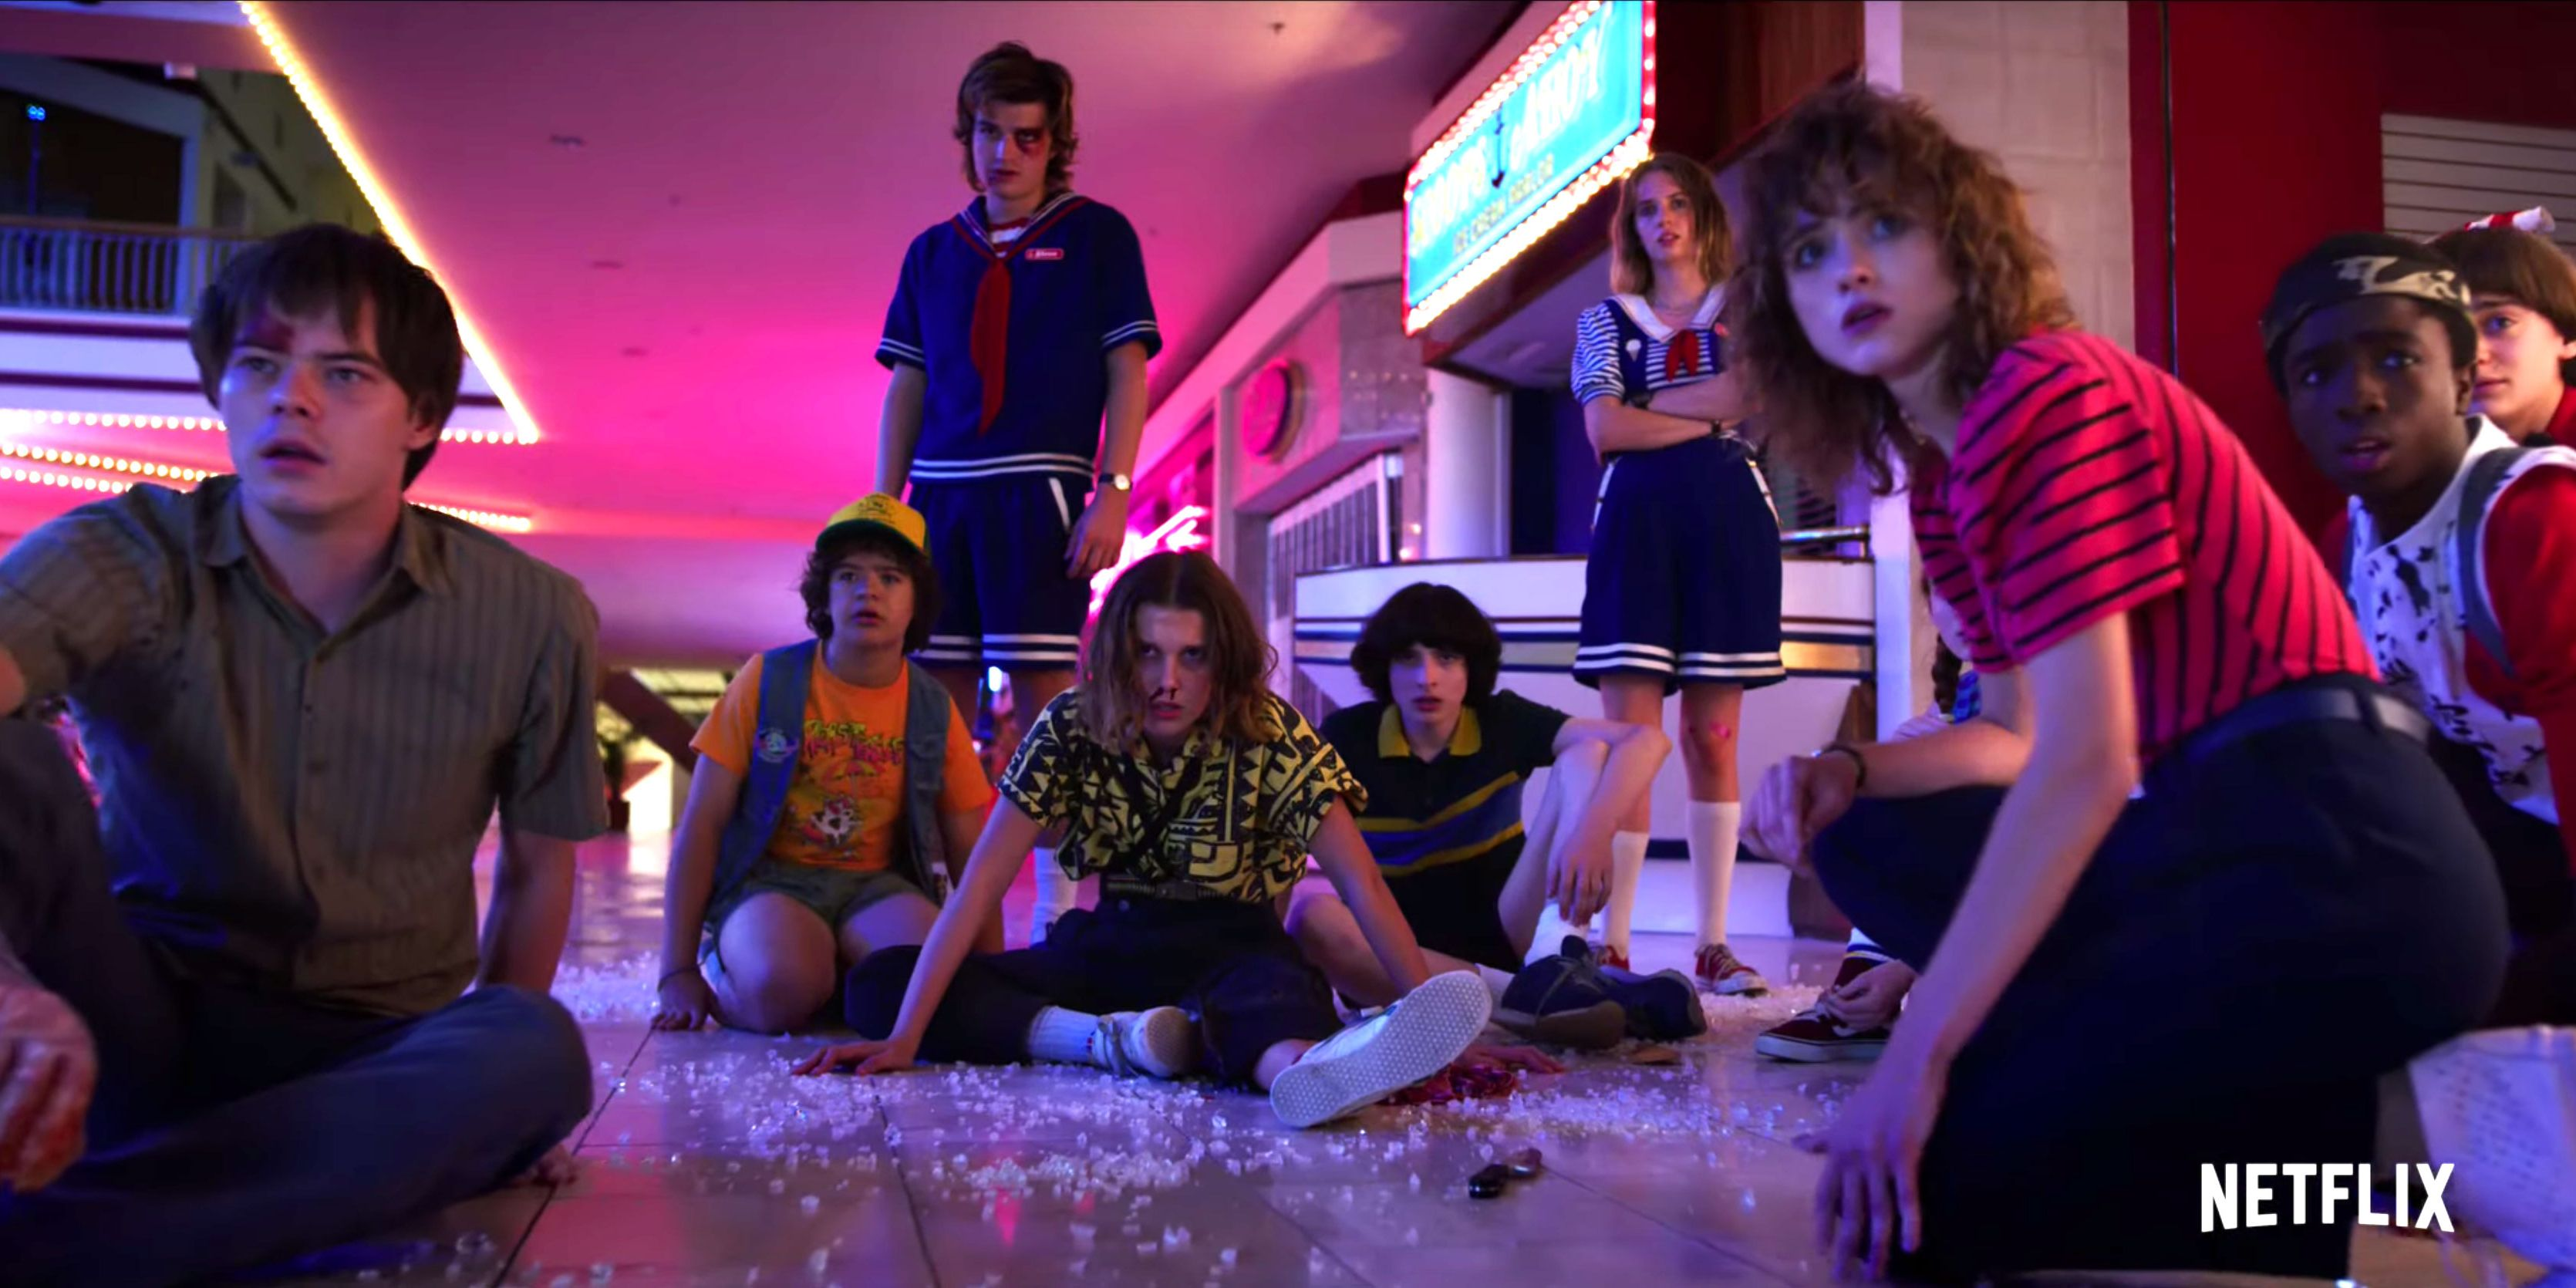 'Stranger Things' Season 3 Trailer Is Here and Has Everything